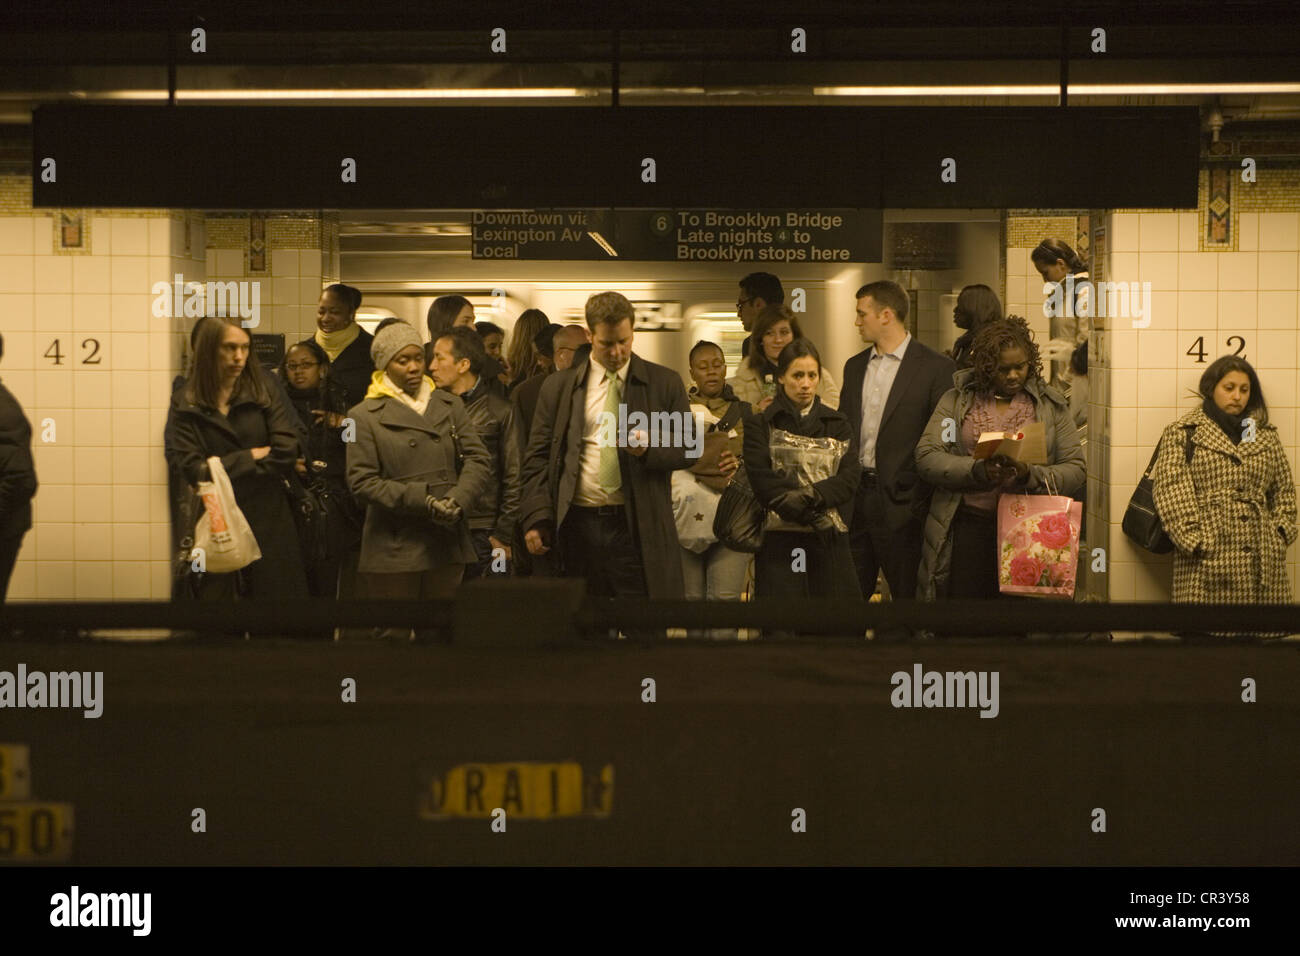 Commuters wait on the platform for a downtown subway train at Grand Central Station in NYC Stock Photo